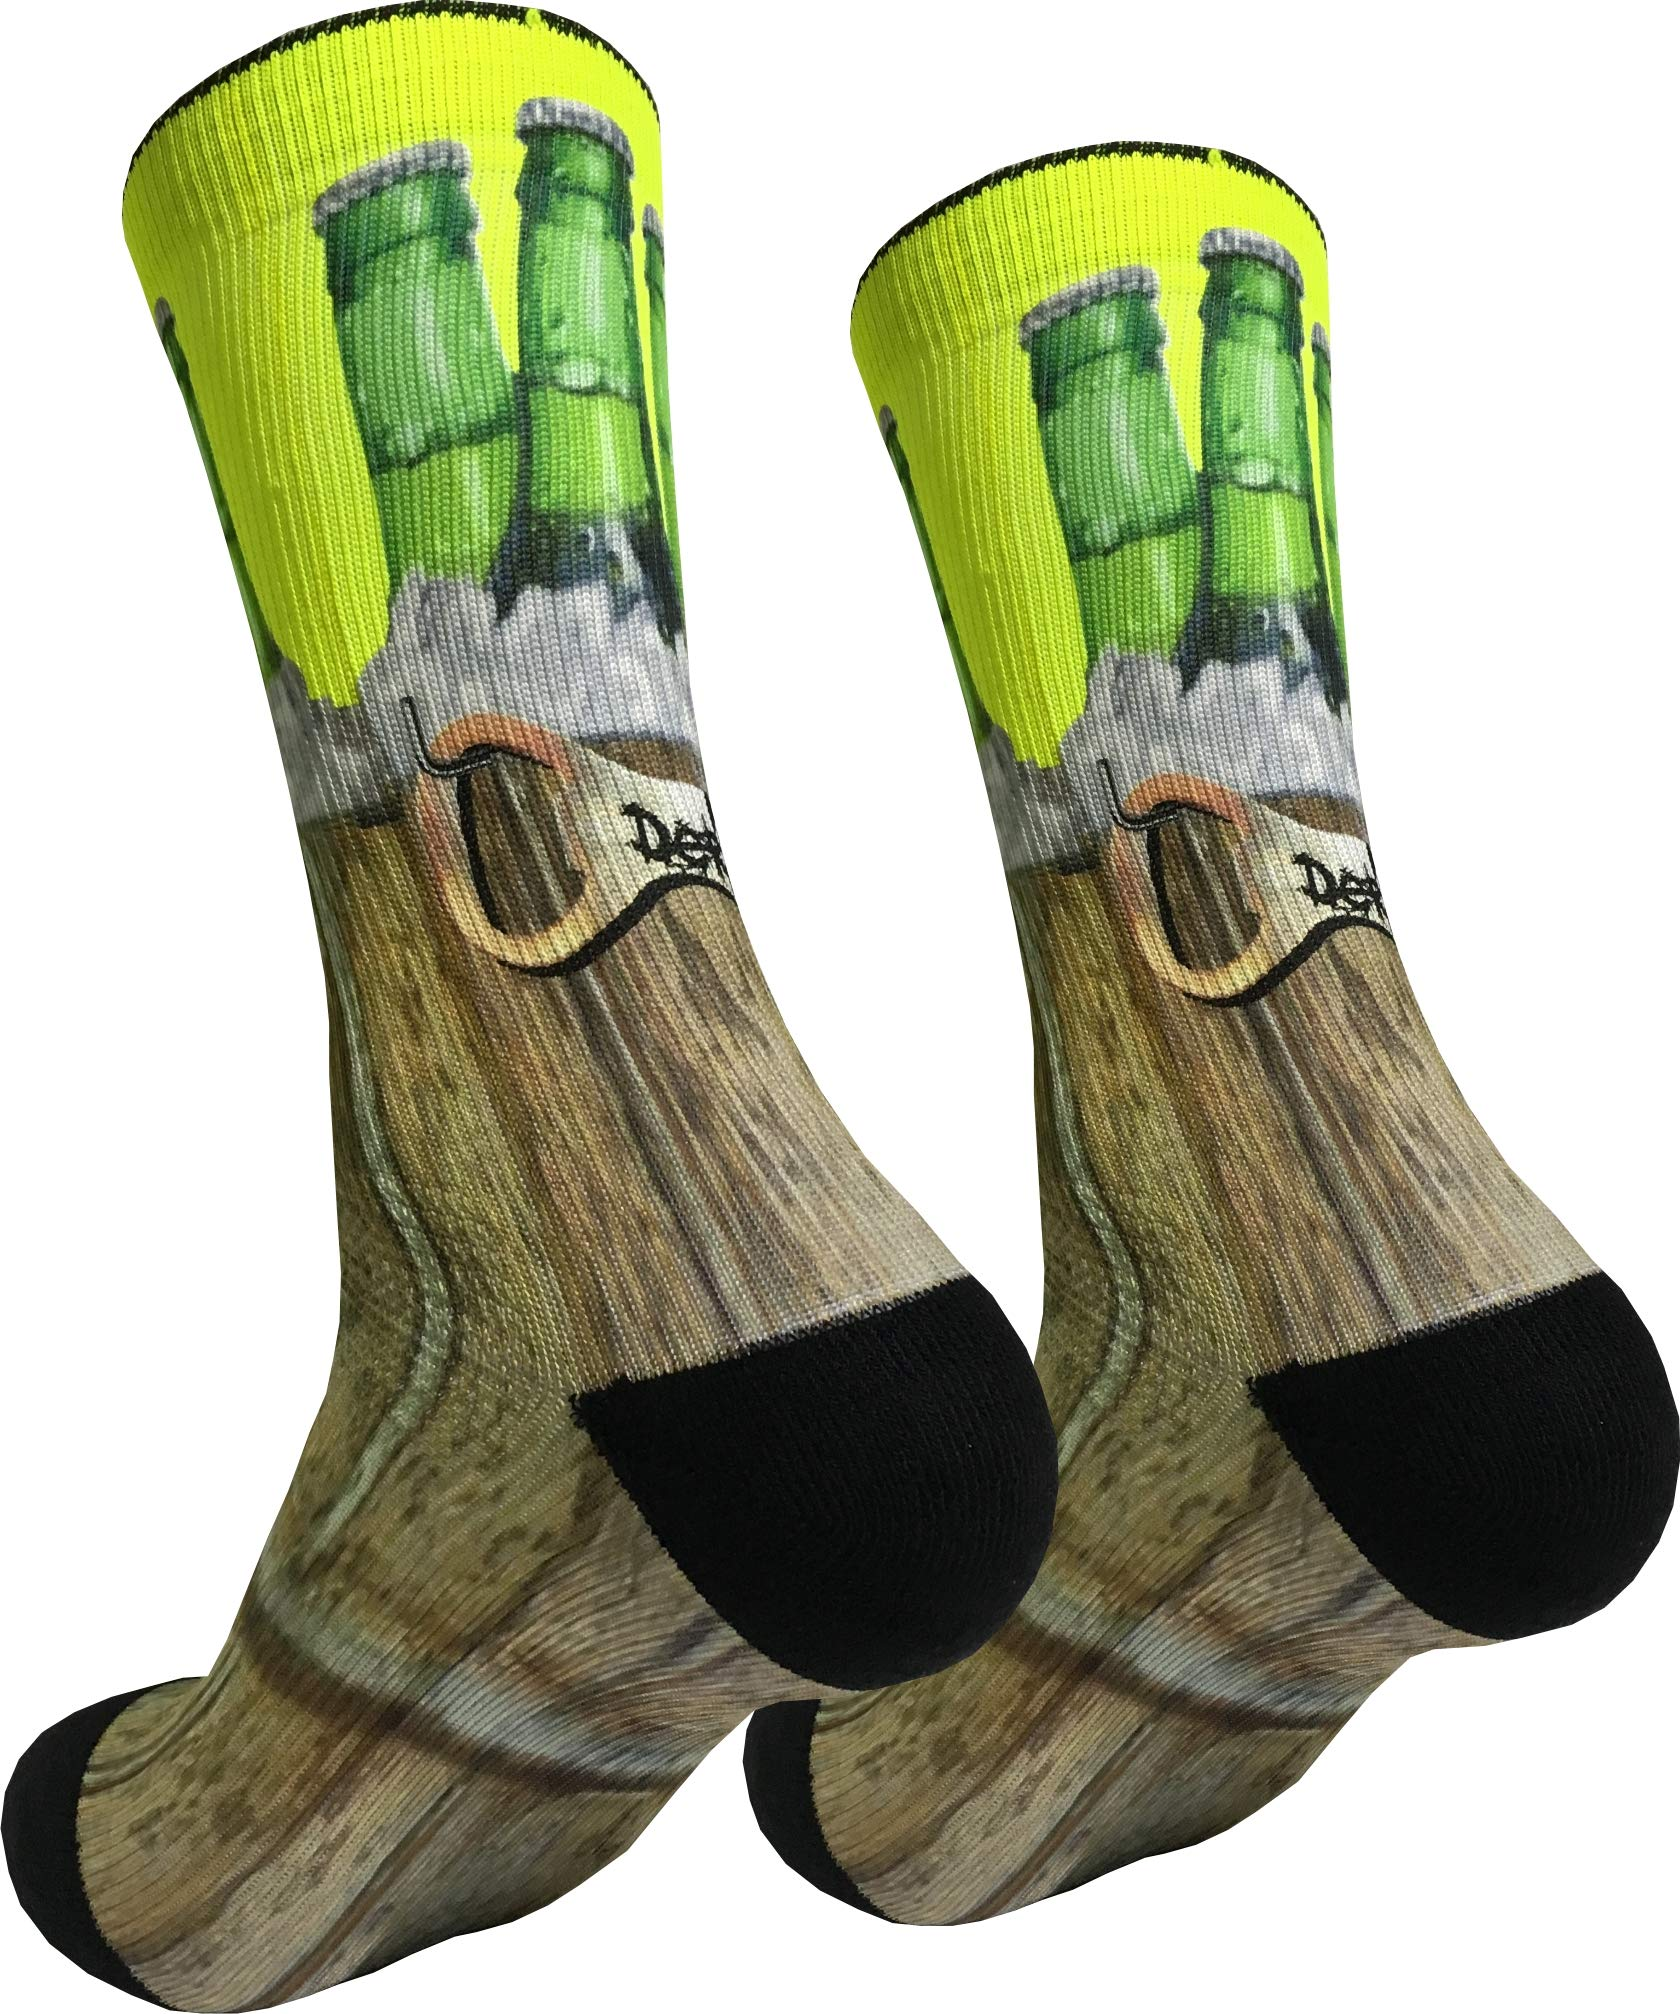 DeRocca Calcetines MTB Botellines (XL) product image